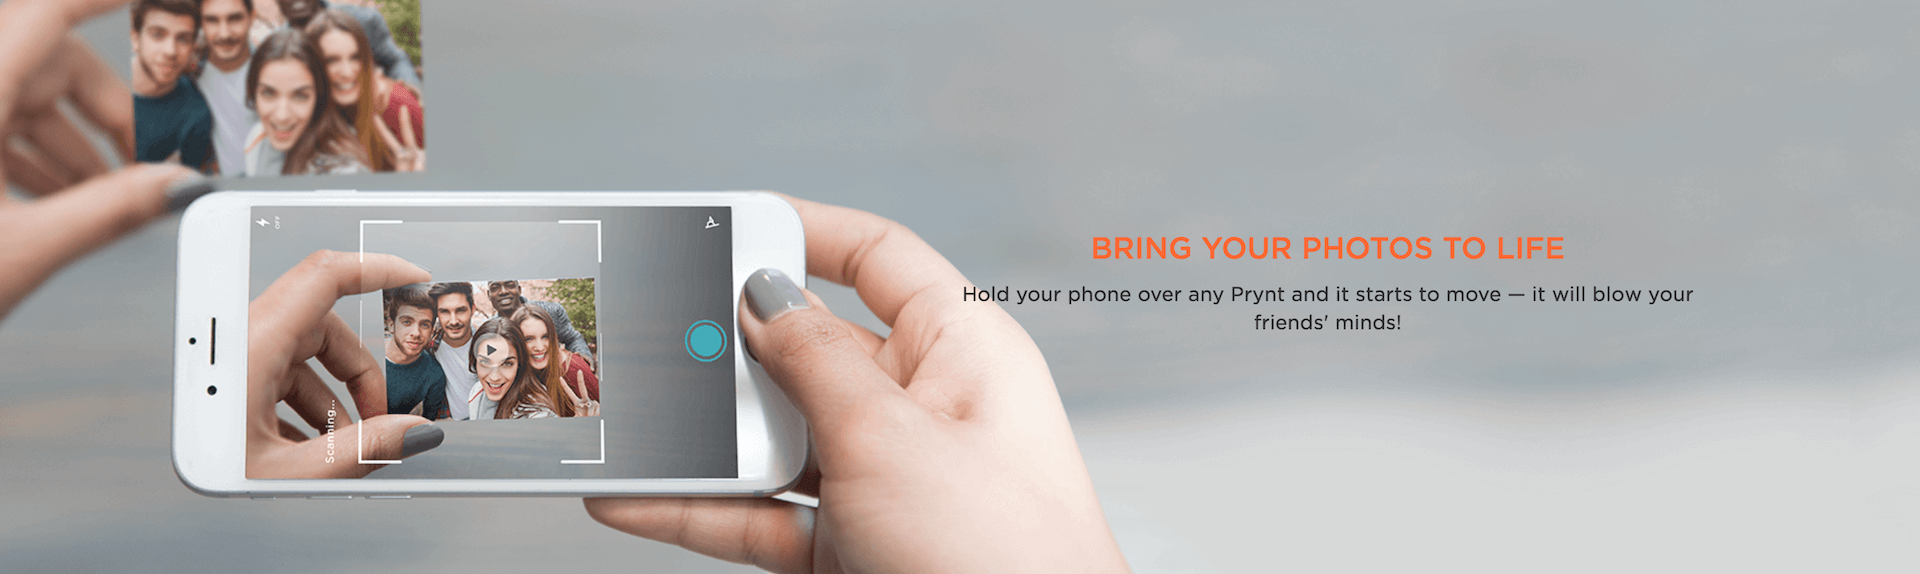 Prynt -the first instant camera case for iPhone